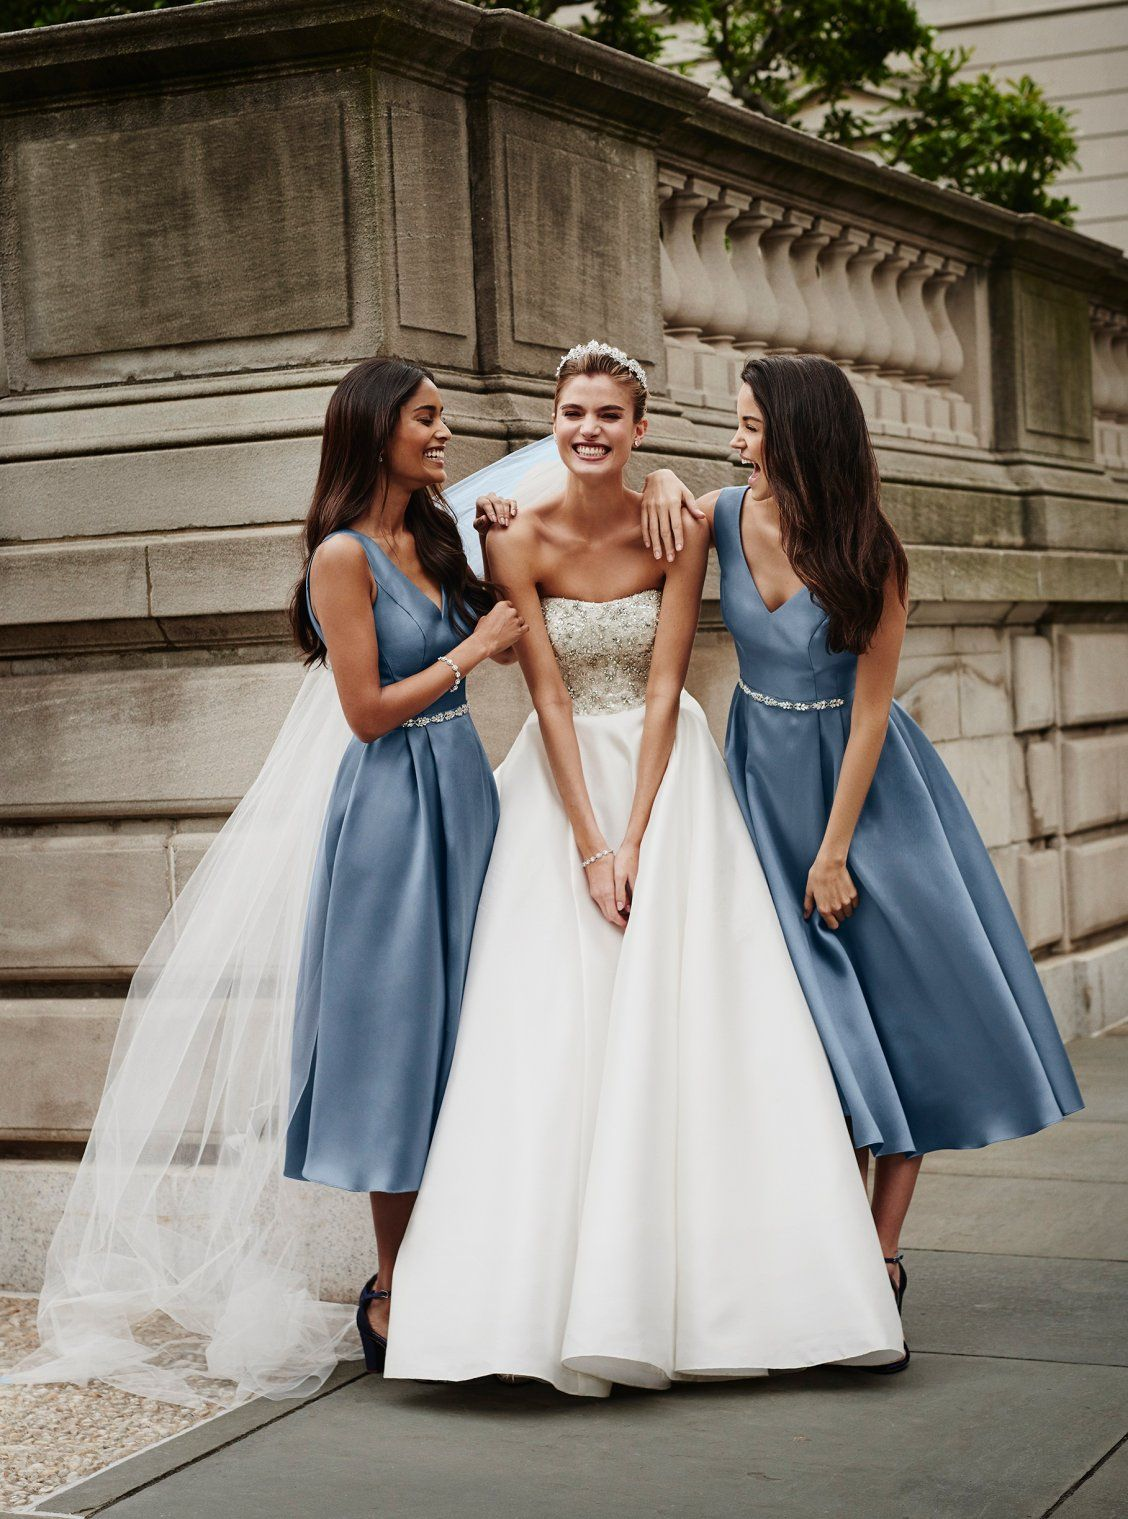 New from oleg cassini classic and elegant bridesmaid dresses for a